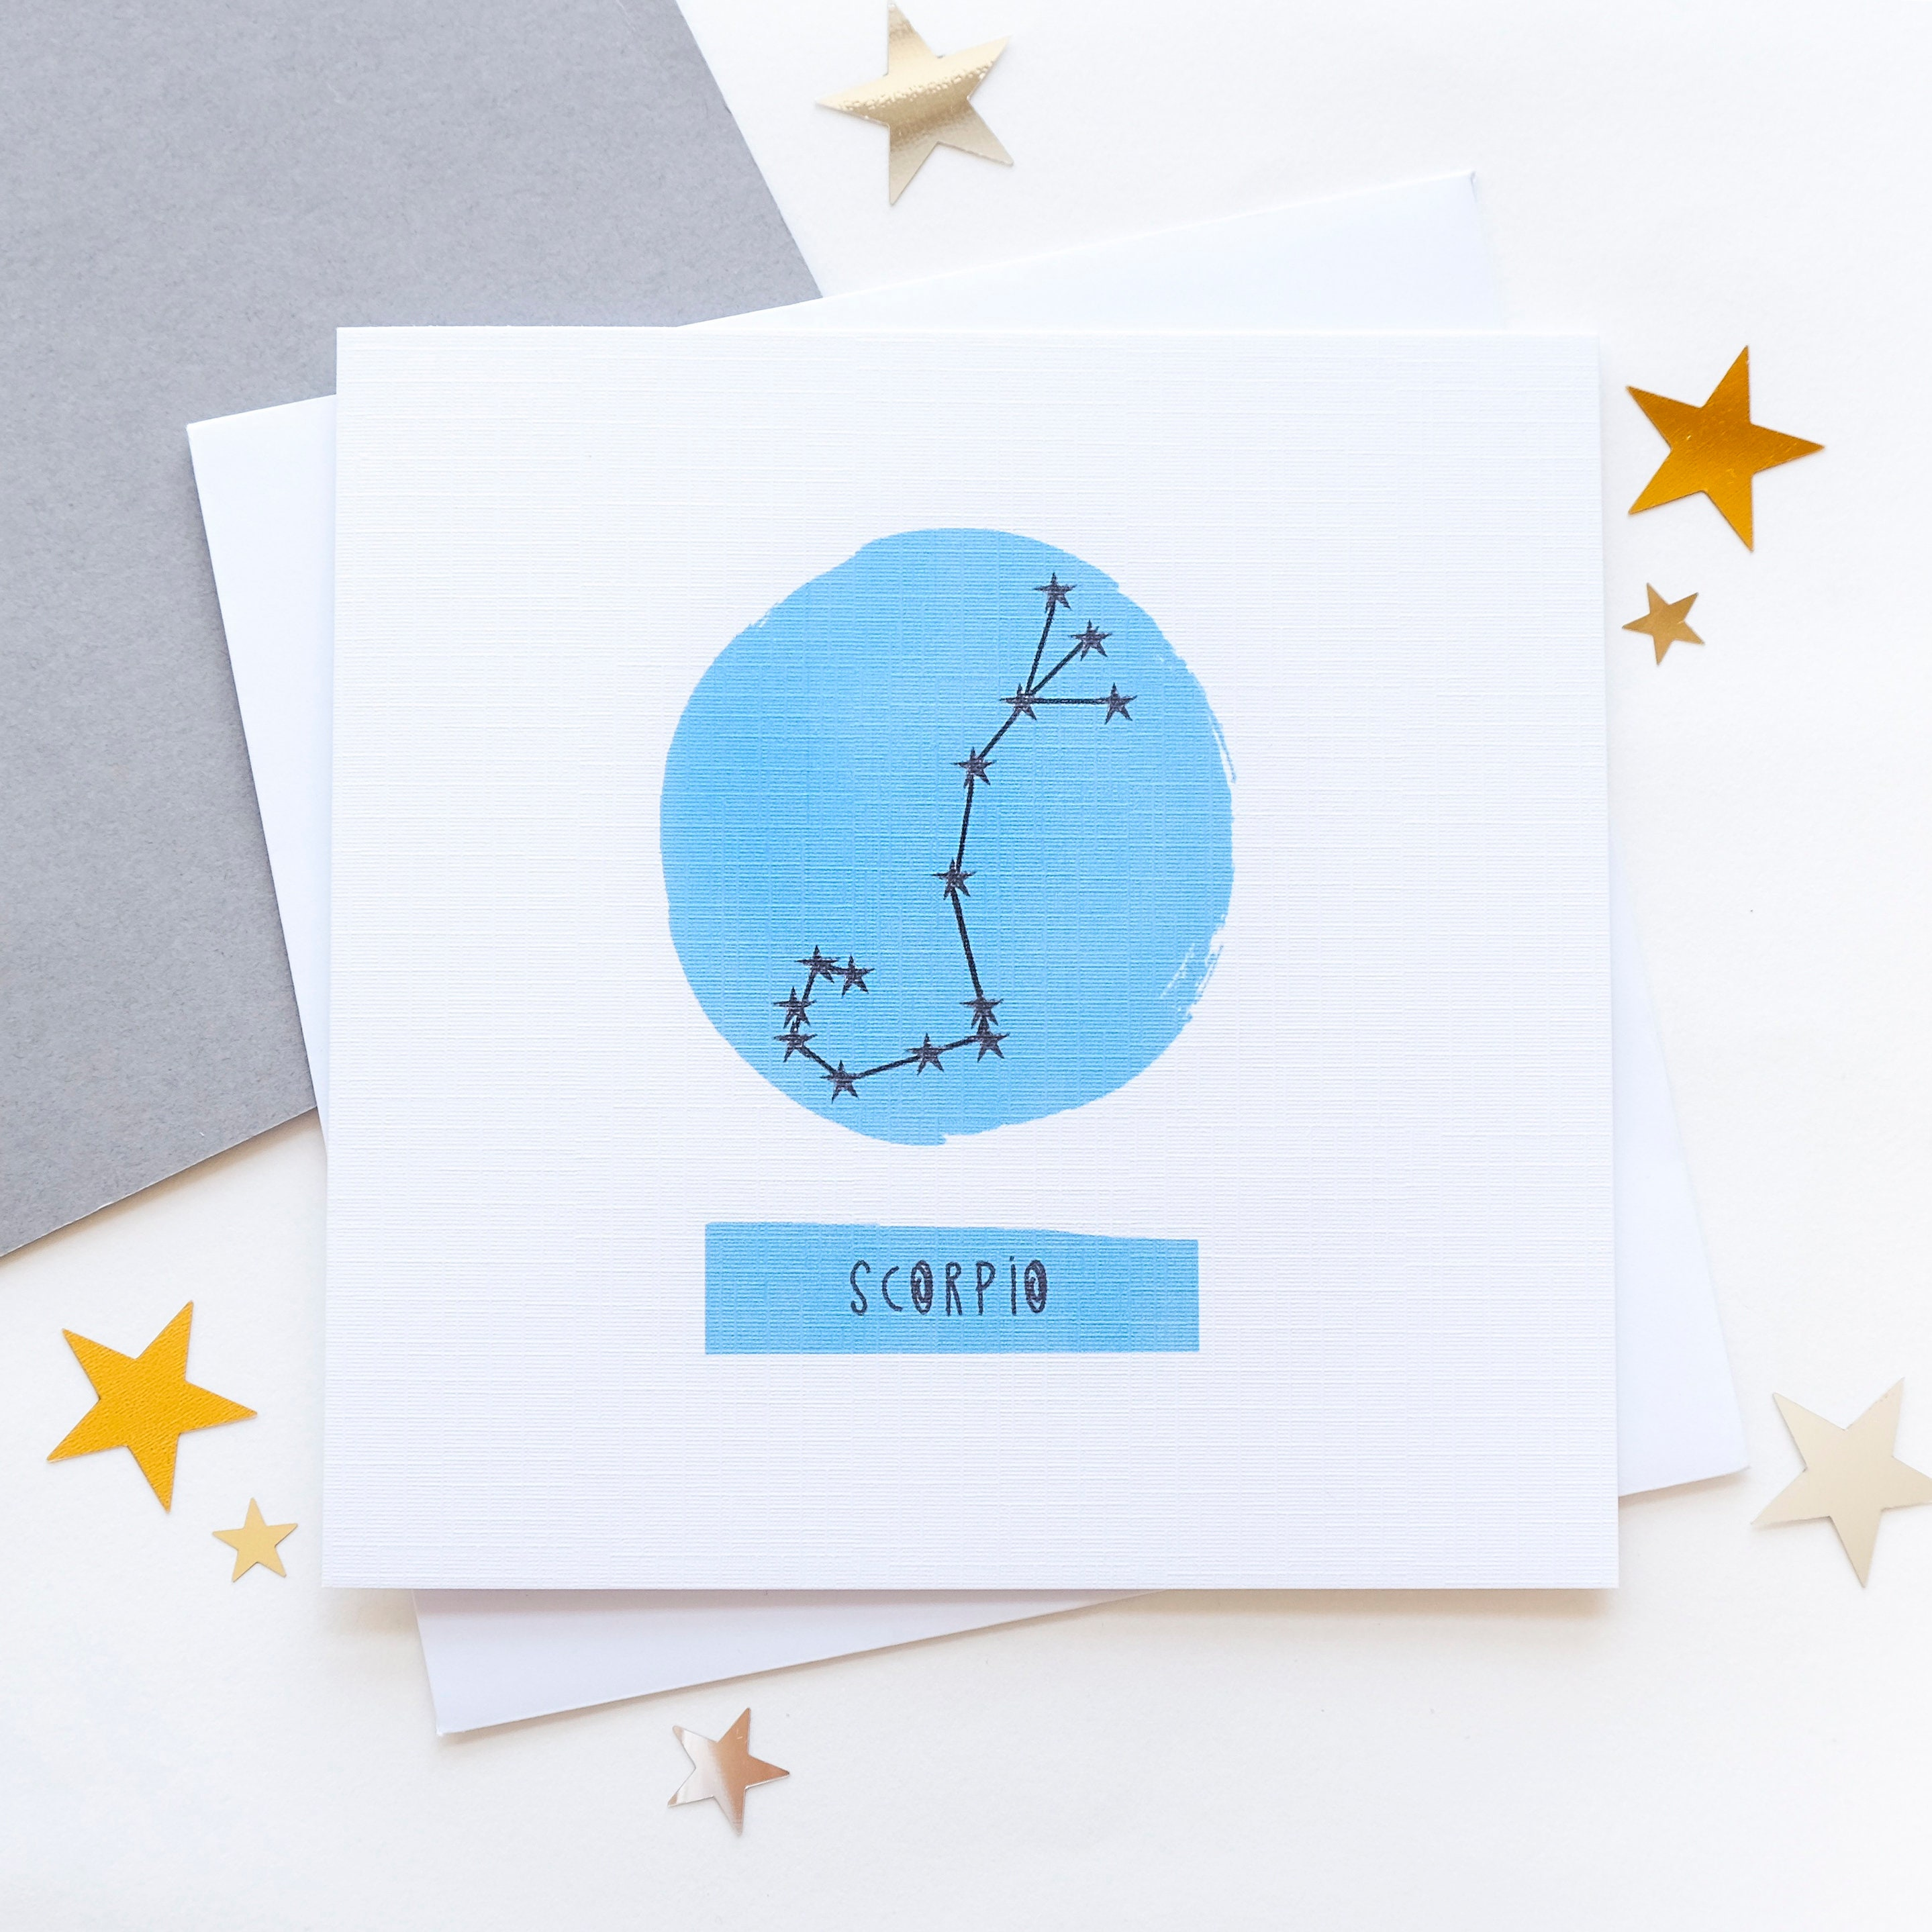 Scorpio Star Sign Zodiac Birthday Card October November Constellation Chart Astrology Horoscope